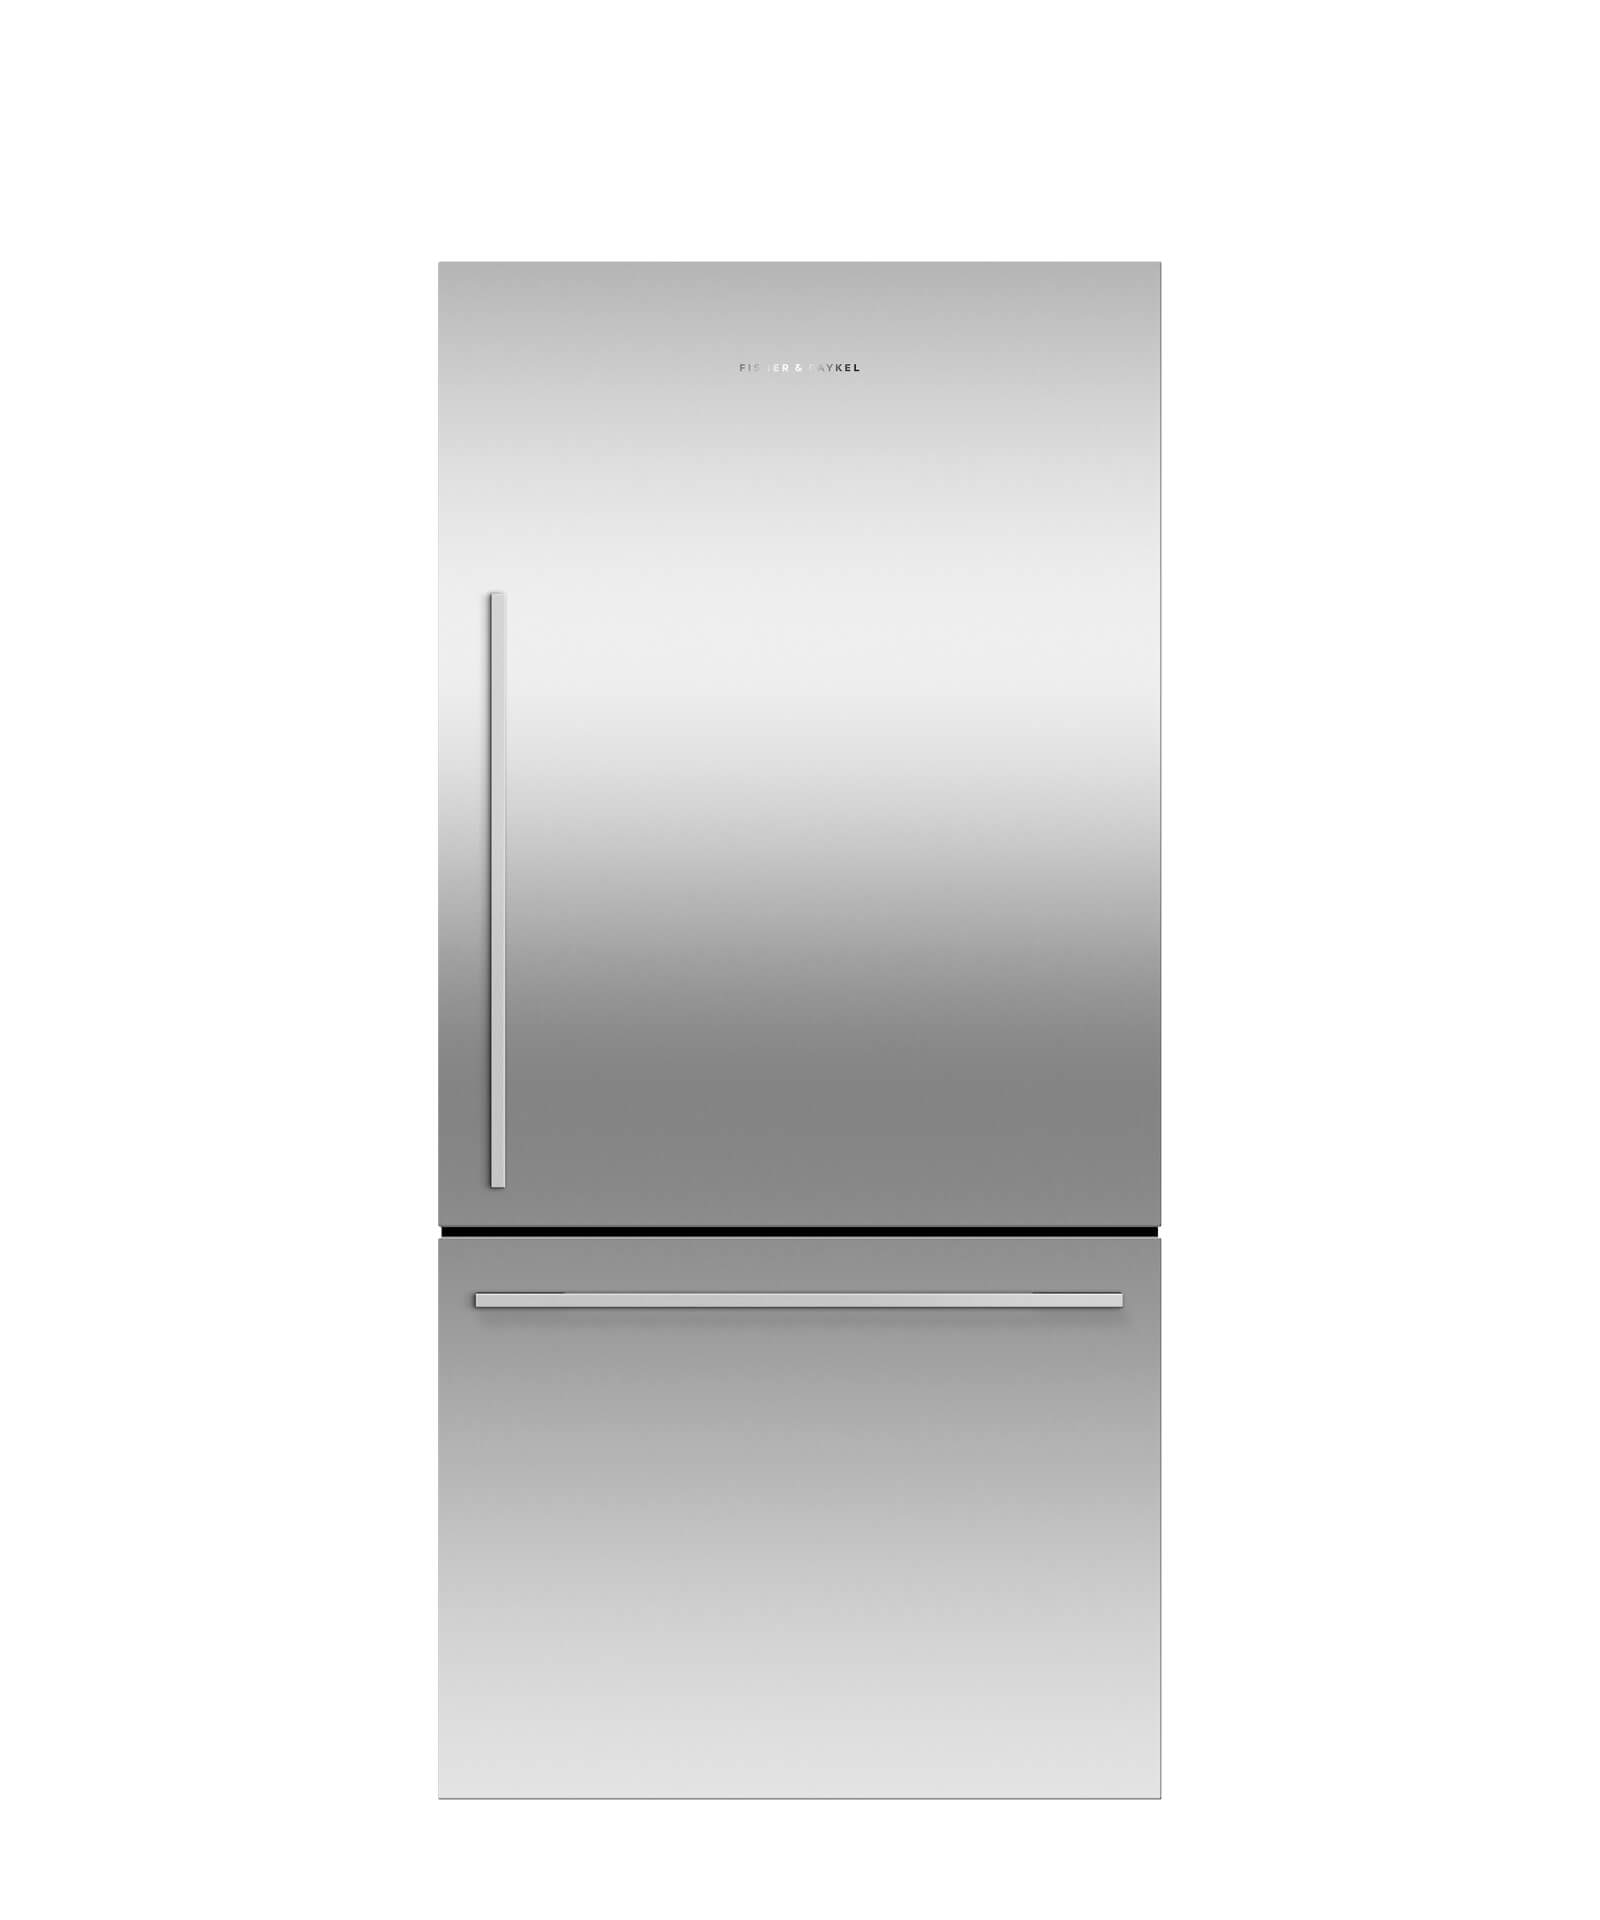 RF170WDRX5 - ActiveSmart™ Fridge - 17 cu. ft. counter depth bottom freezer - 24269